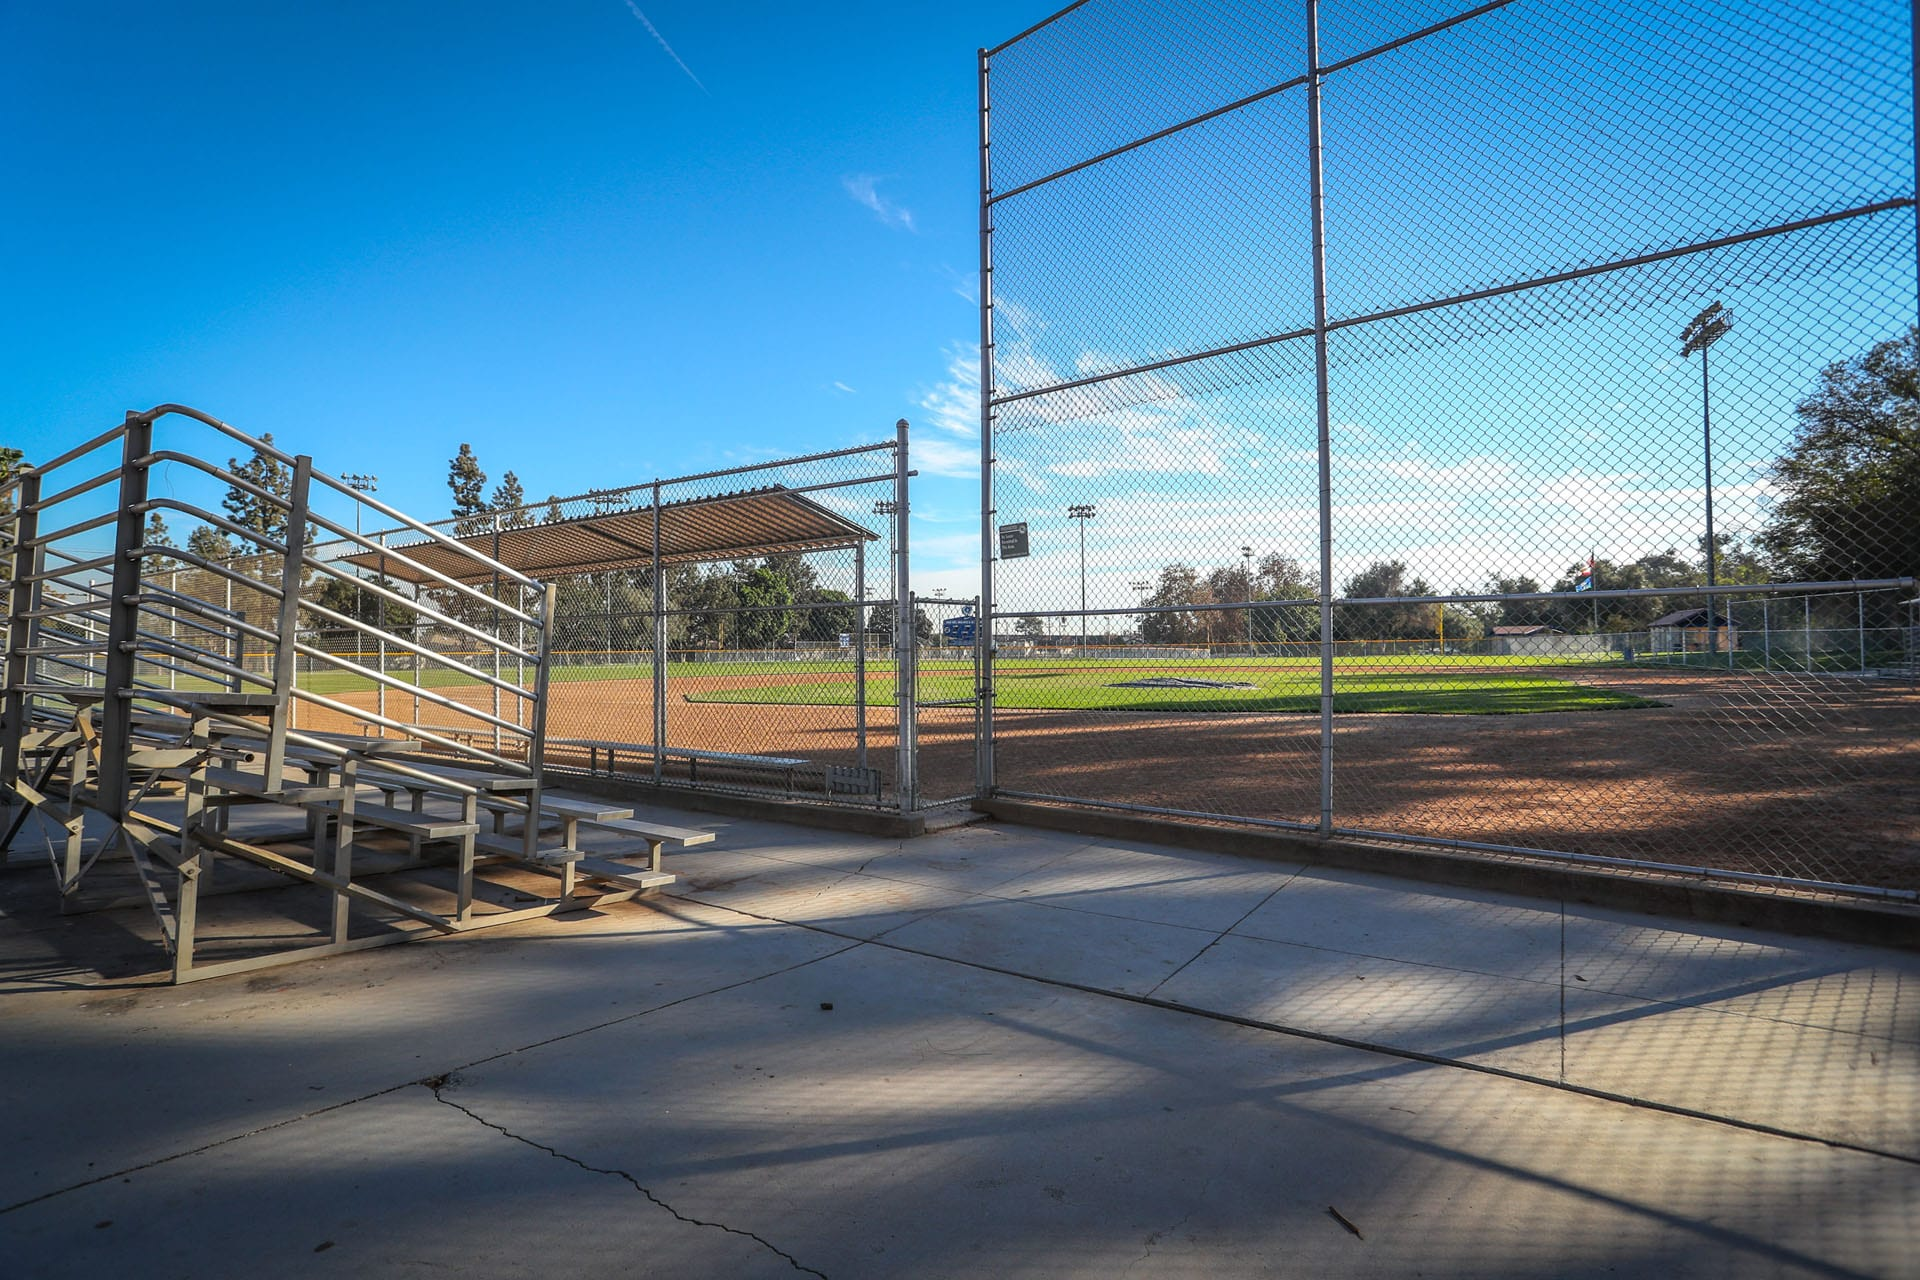 Bleacher to the side of the baseball field